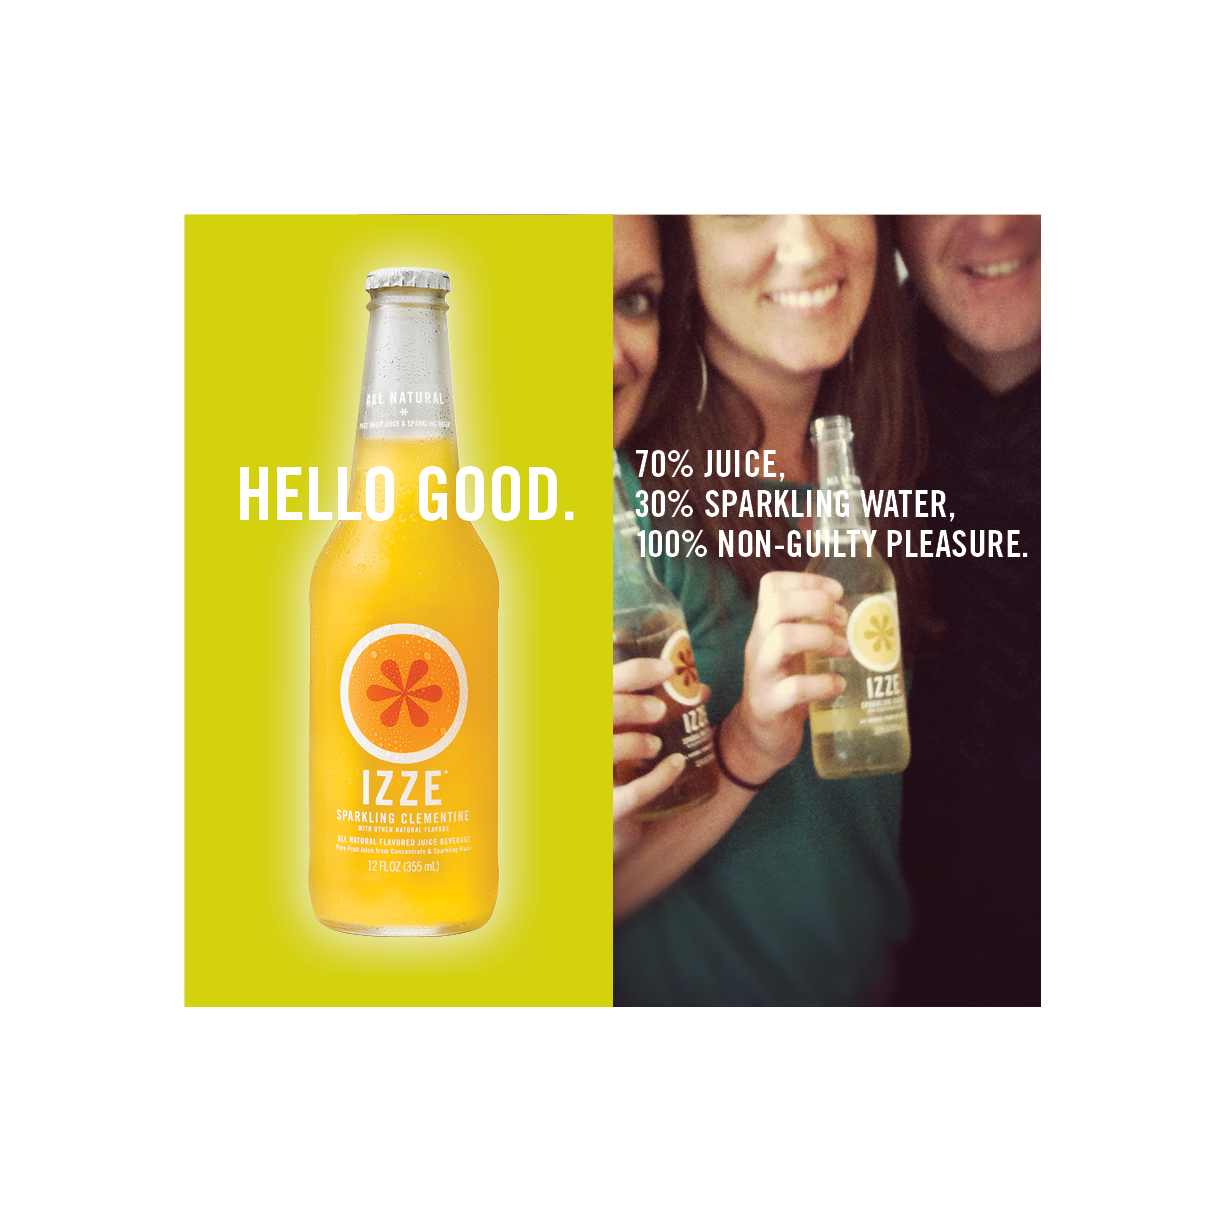 IZZE_HELLO_ads8